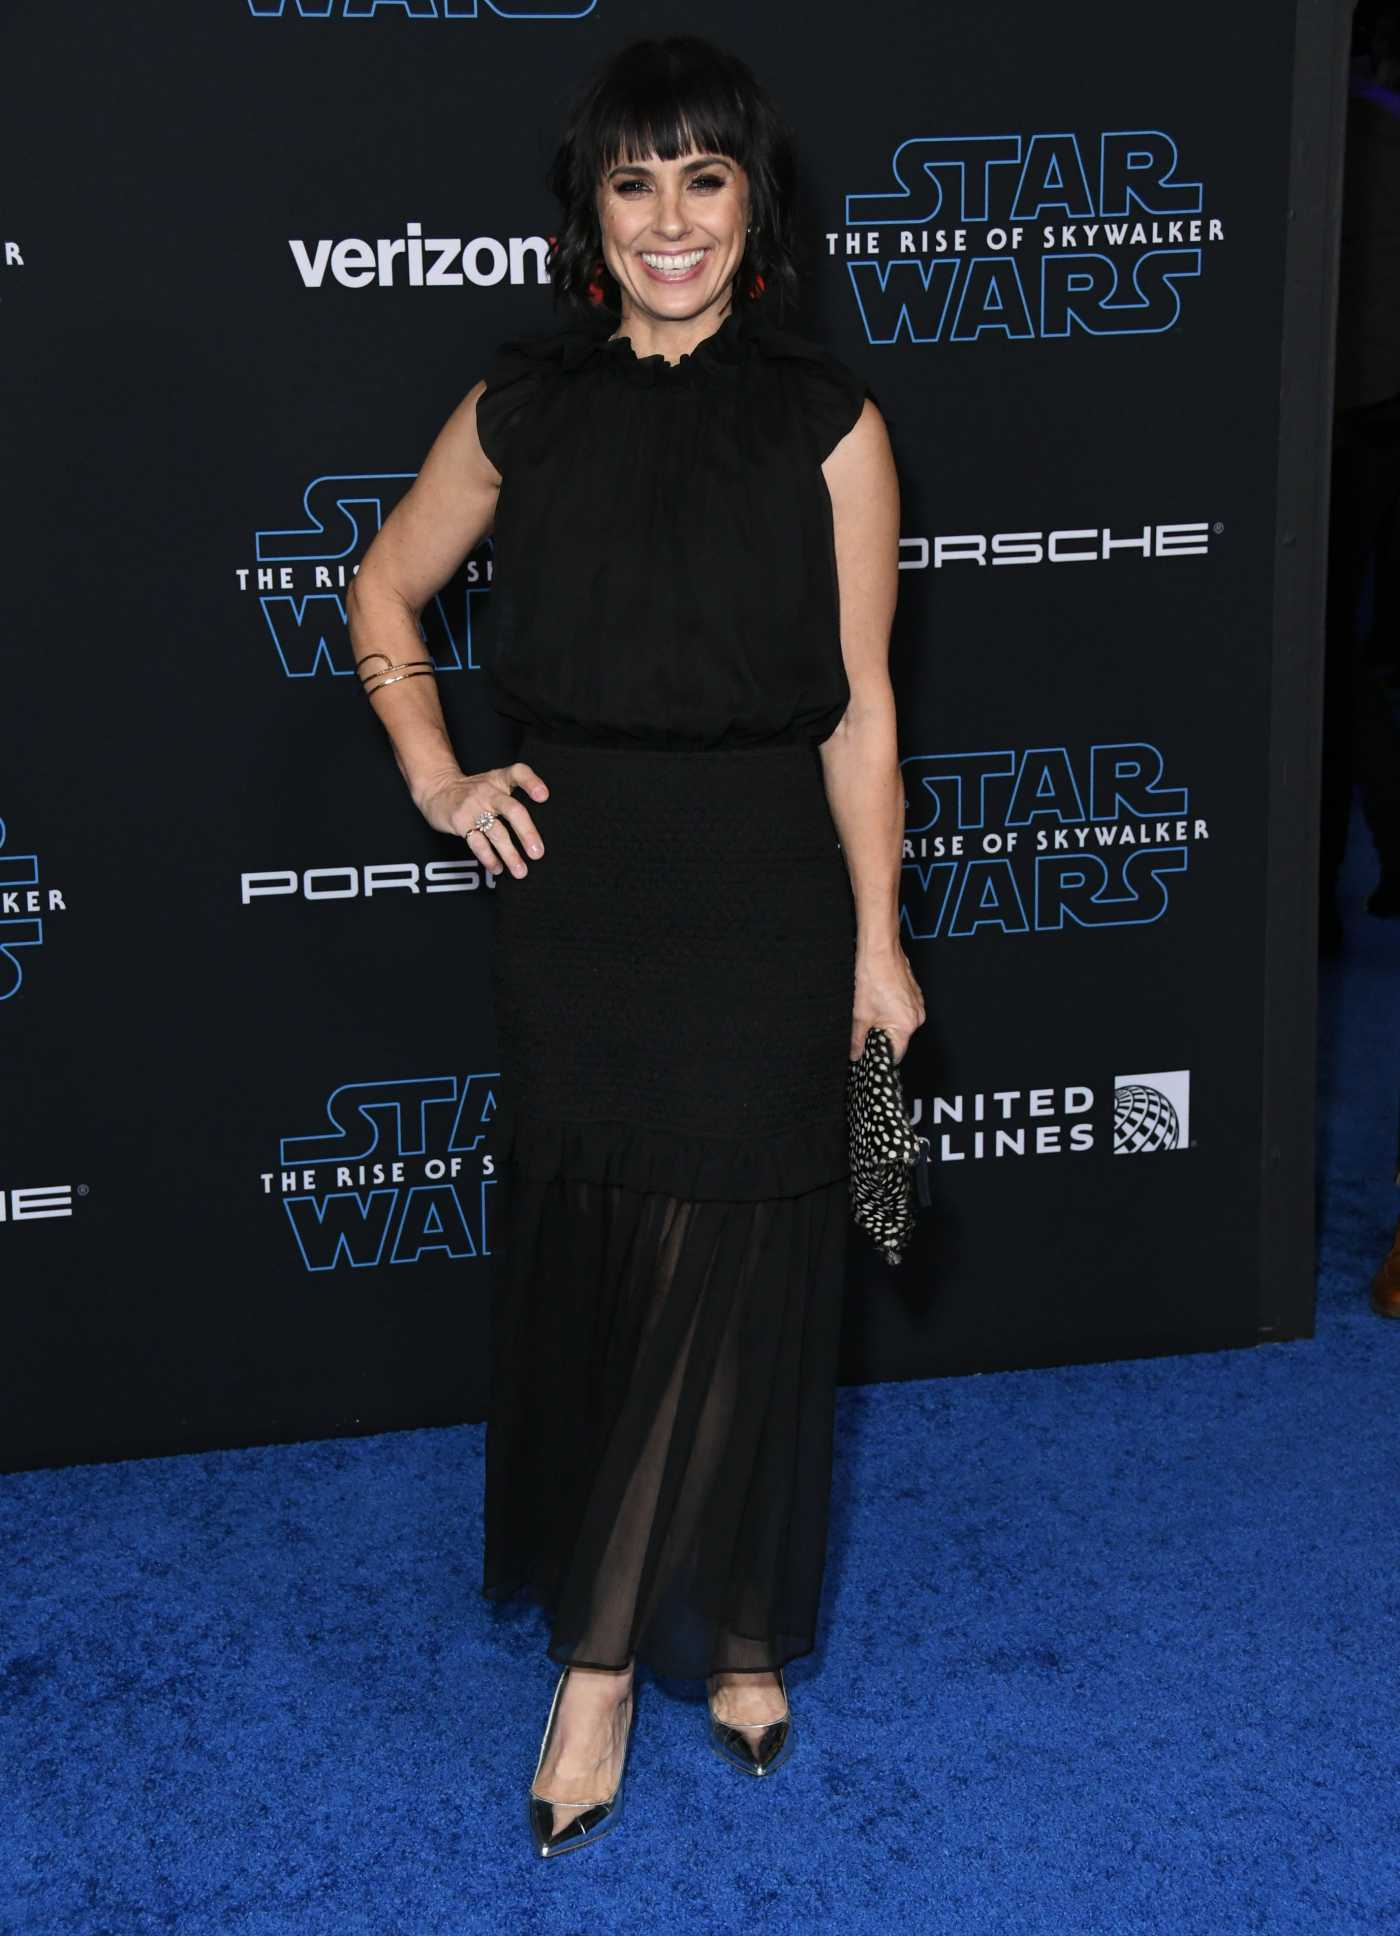 Constance Zimmer Attends Star Wars: The Rise of Skywalker Premiere in Los Angeles 12/16/2019